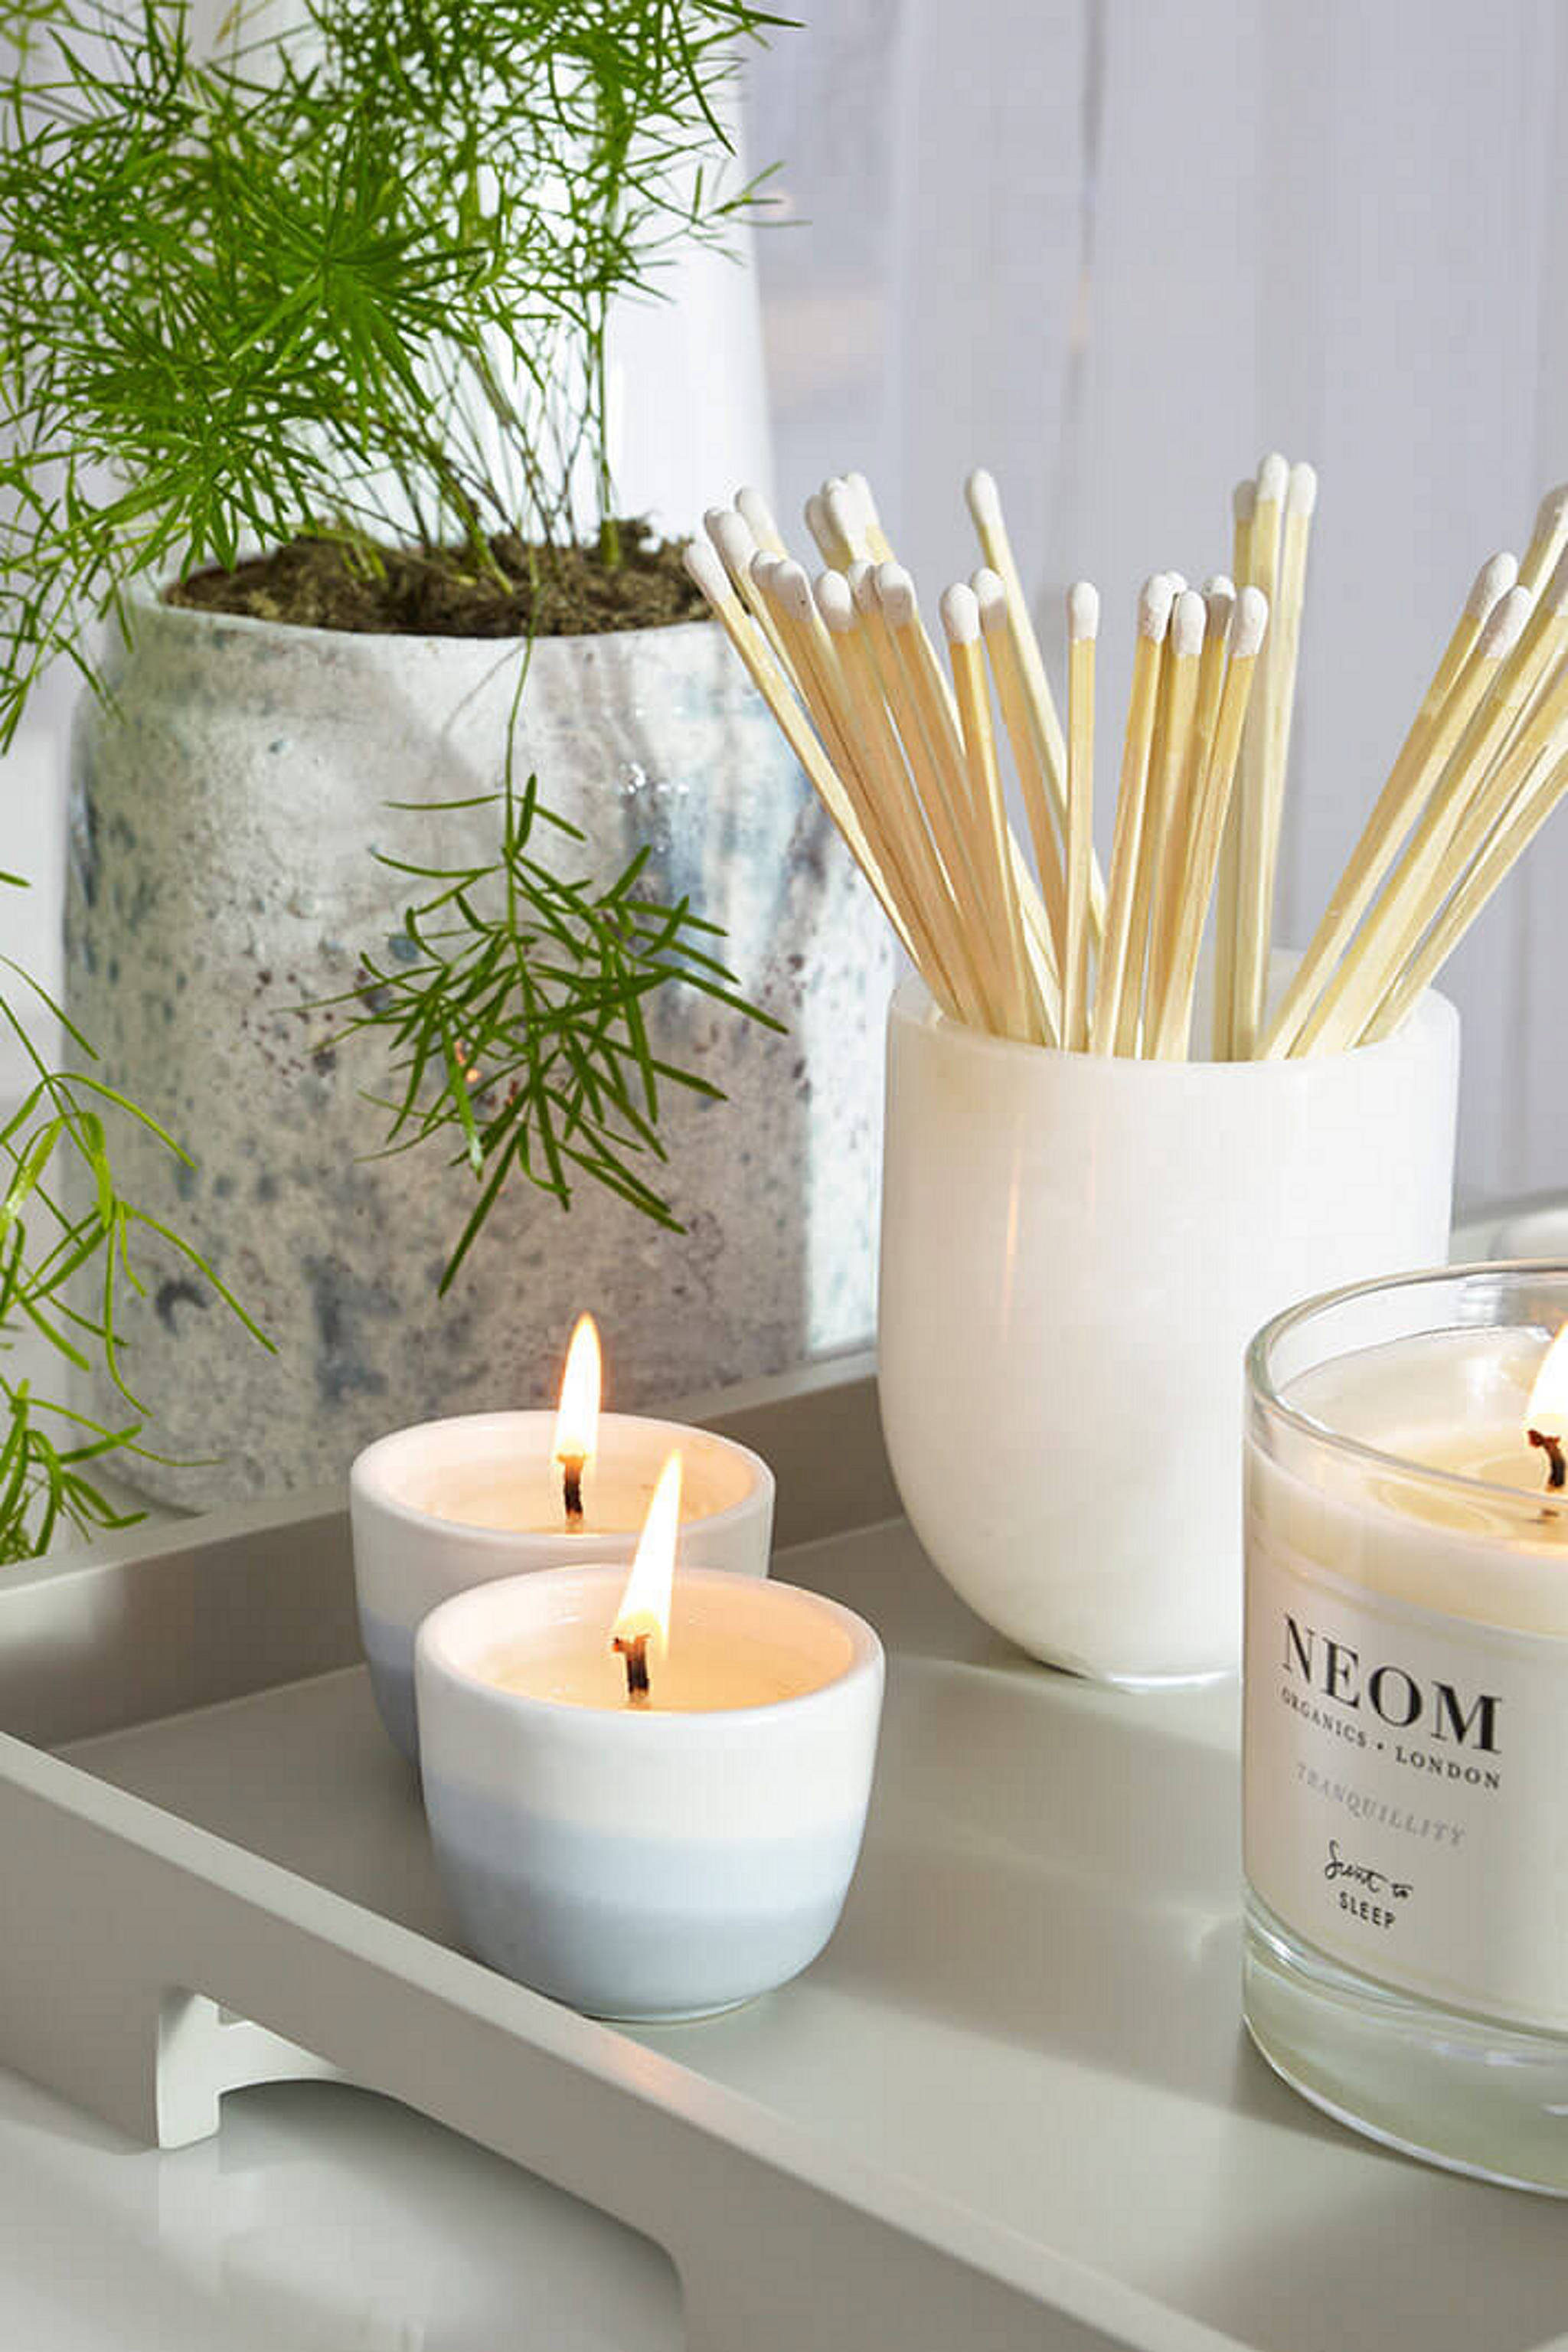 Room for Wellbeing: Candles, plant pot